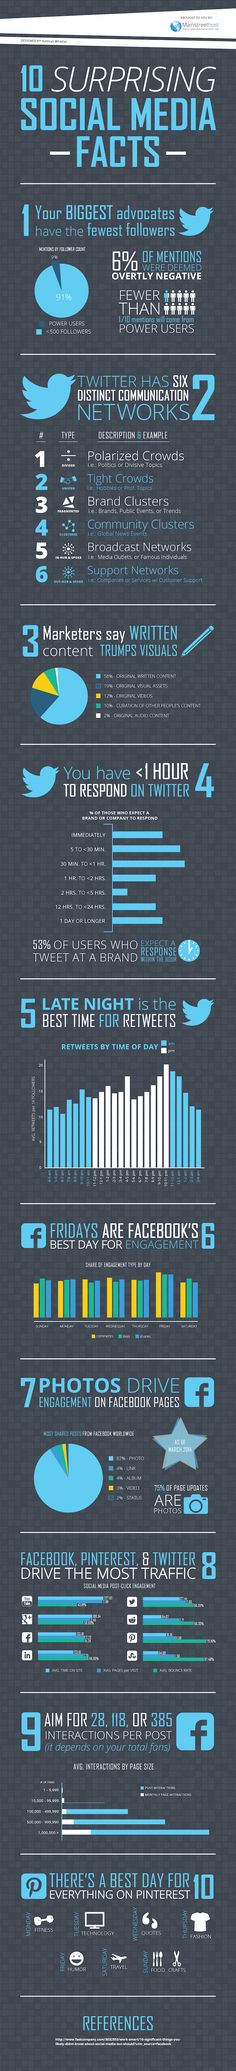 You have 1 hour to respond to customers on Twitter, and 9 other surprising #SocialMedia facts. #infographic